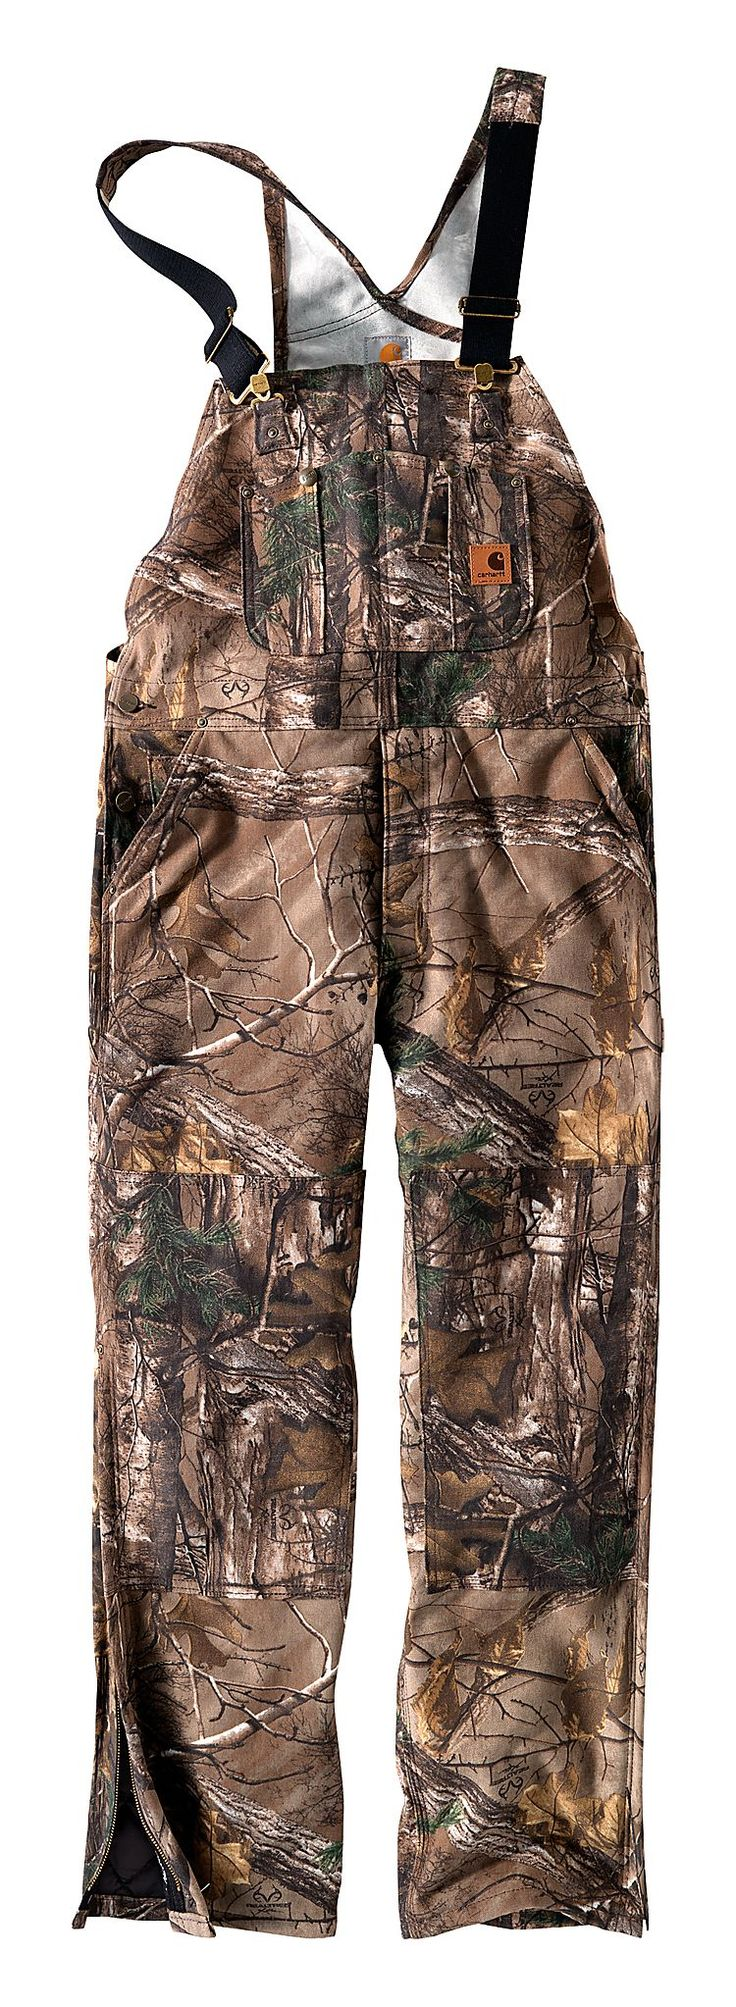 Carhartt® Realtree Xtra® Camo Bib Overalls for Men | Bass Pro Shops